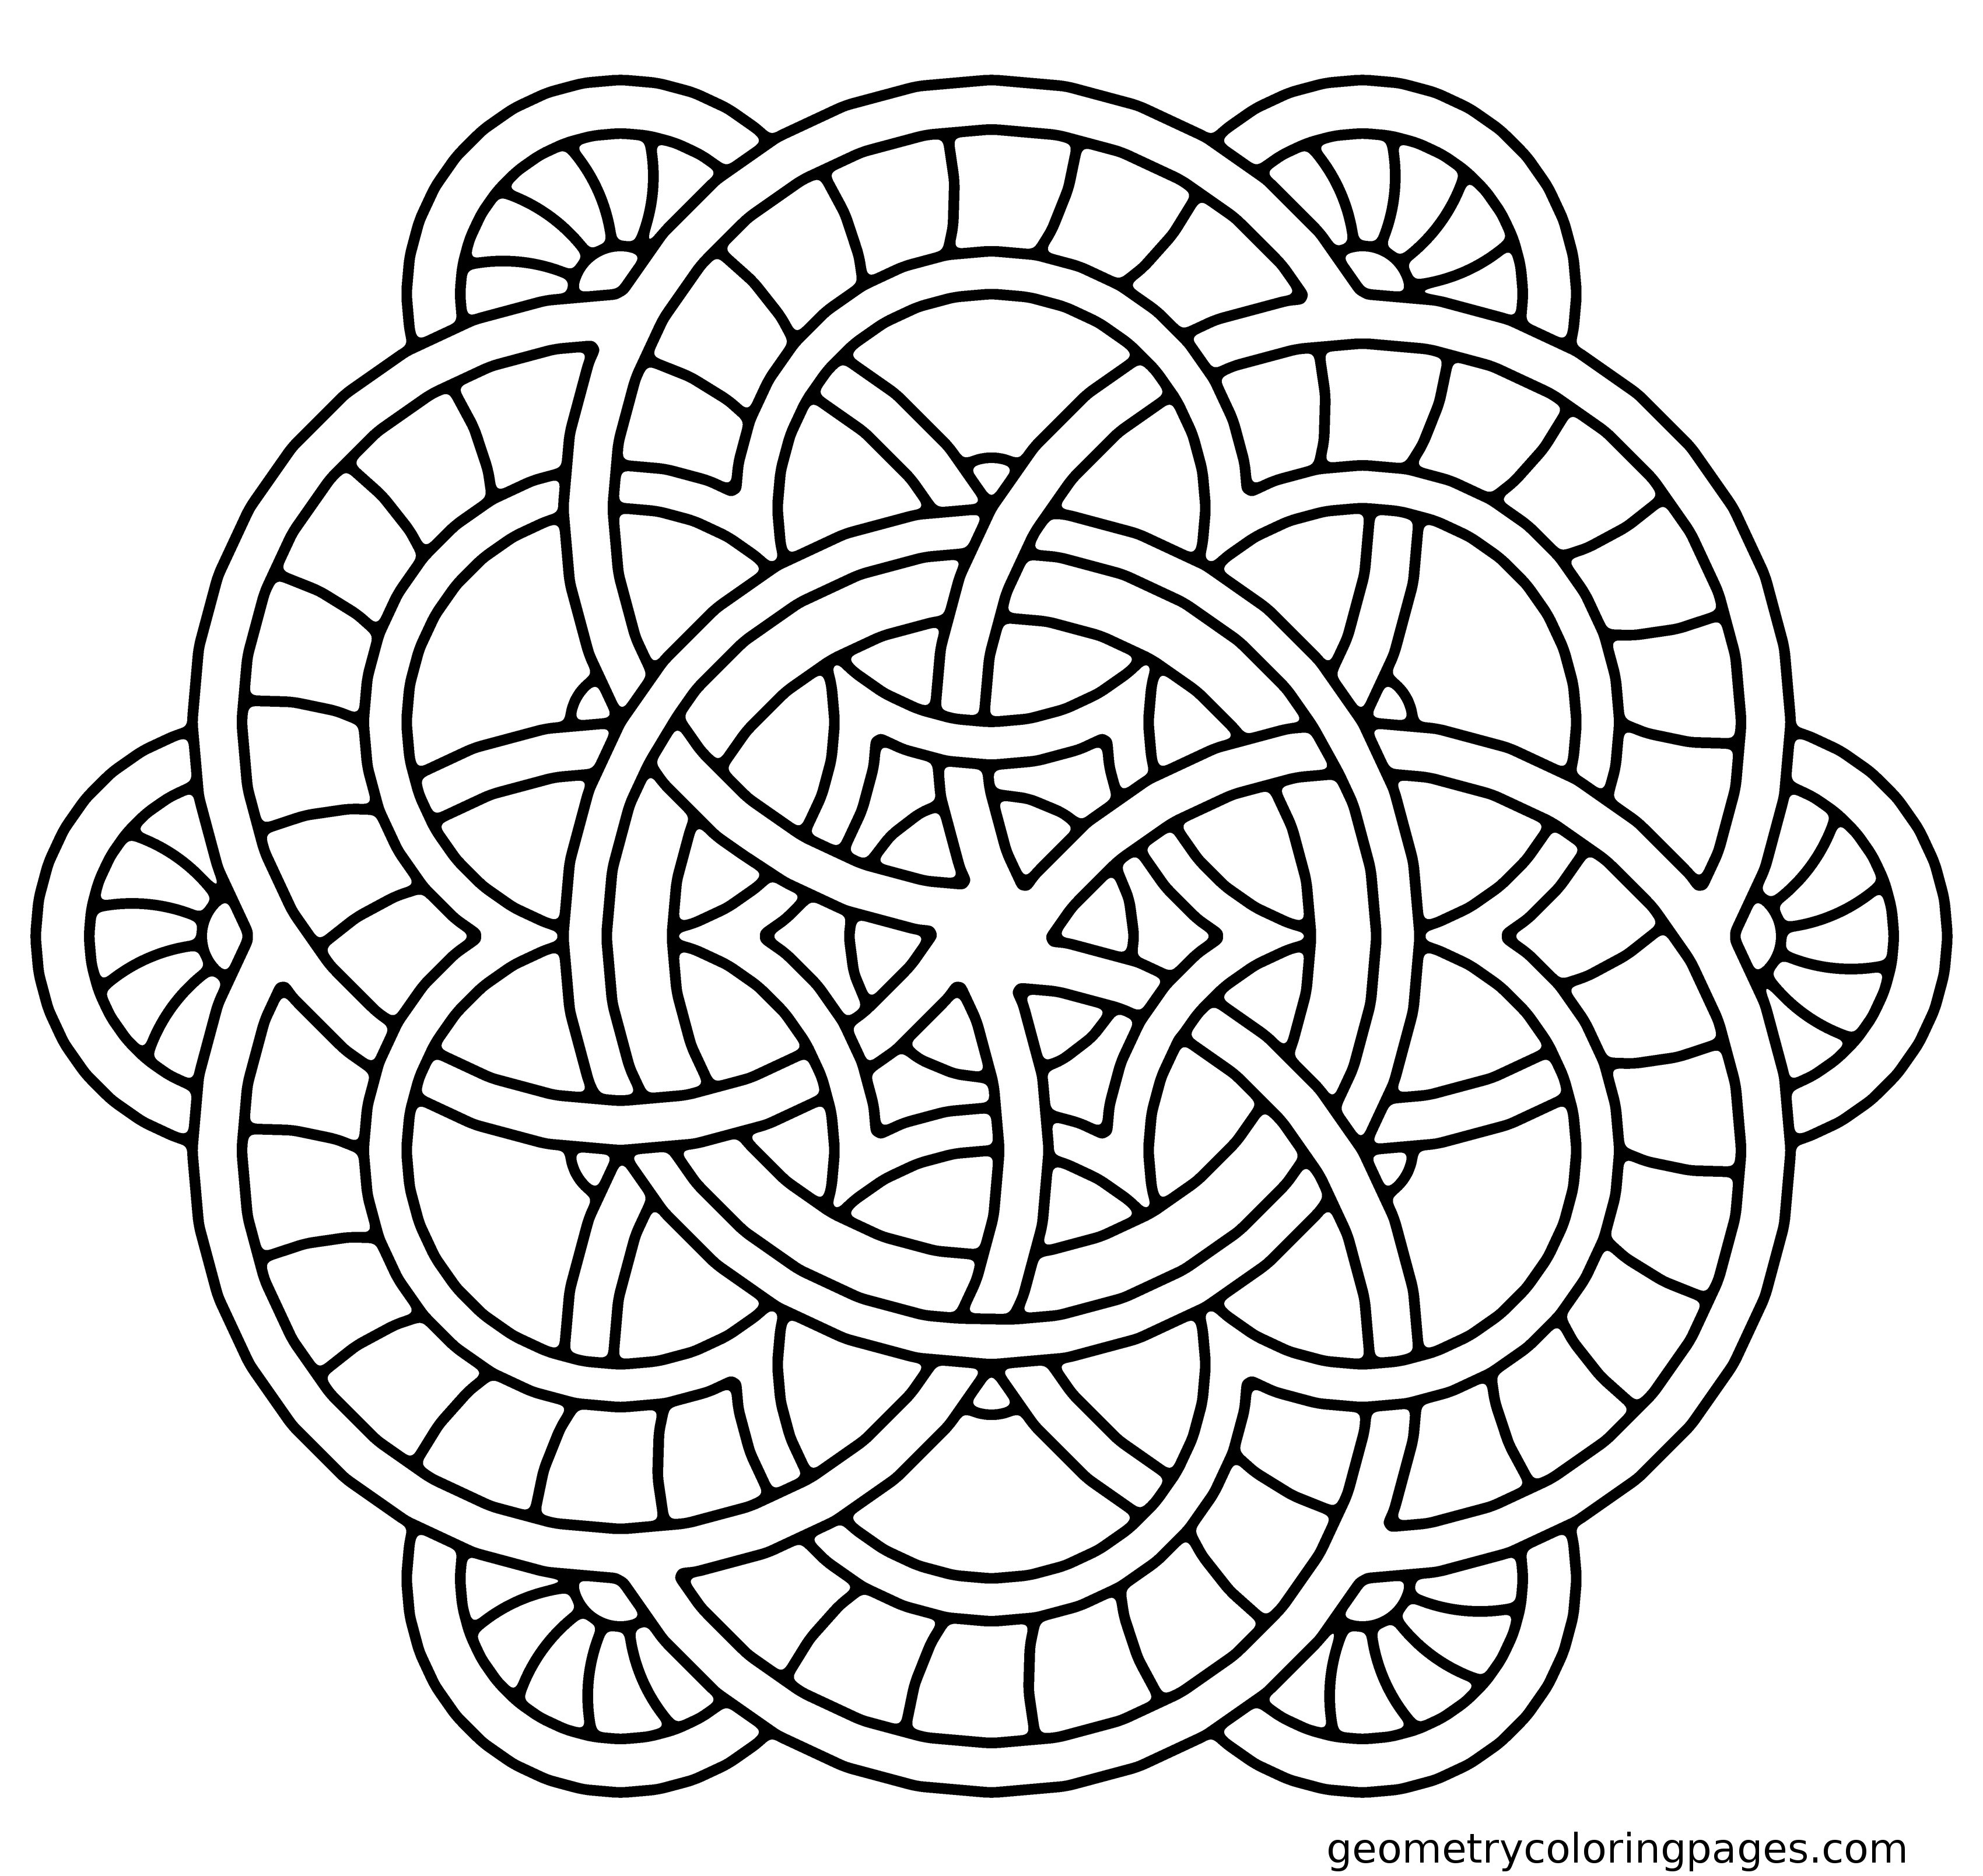 Free Mandala Coloring Pages Free Mandala Coloring Pages To Print Aprendaco Free Mandala With